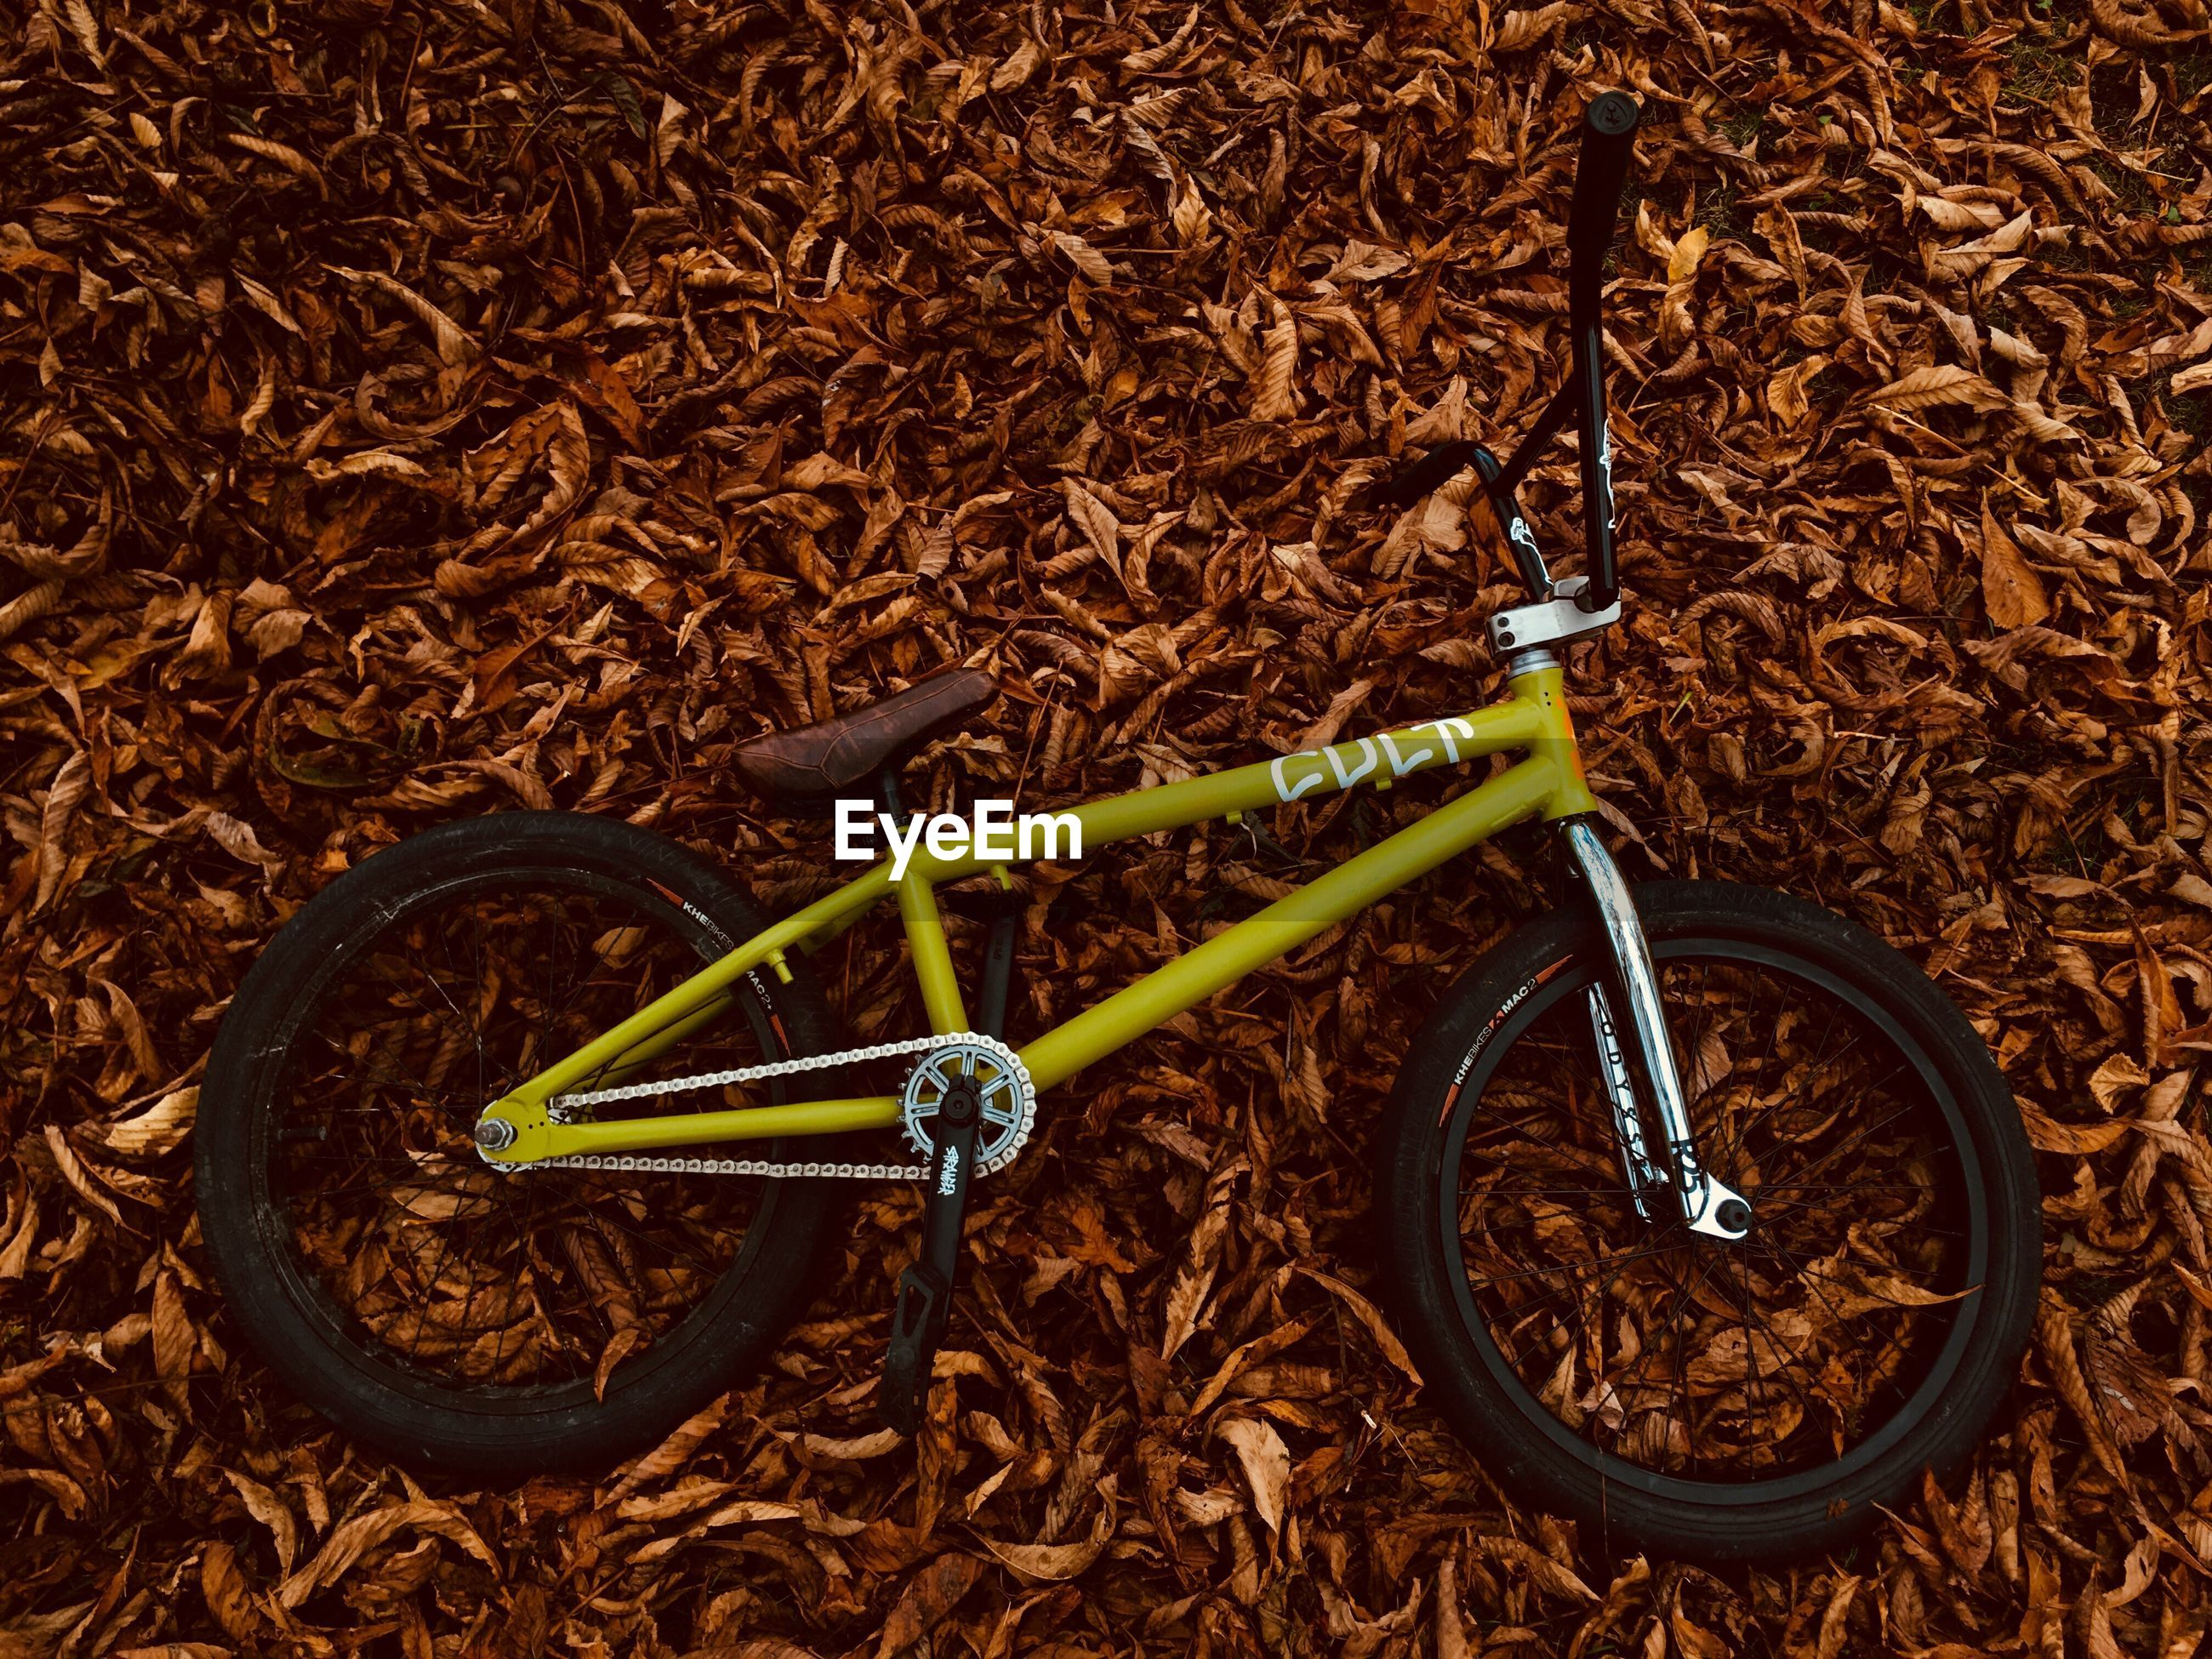 CLOSE-UP VIEW OF BICYCLES